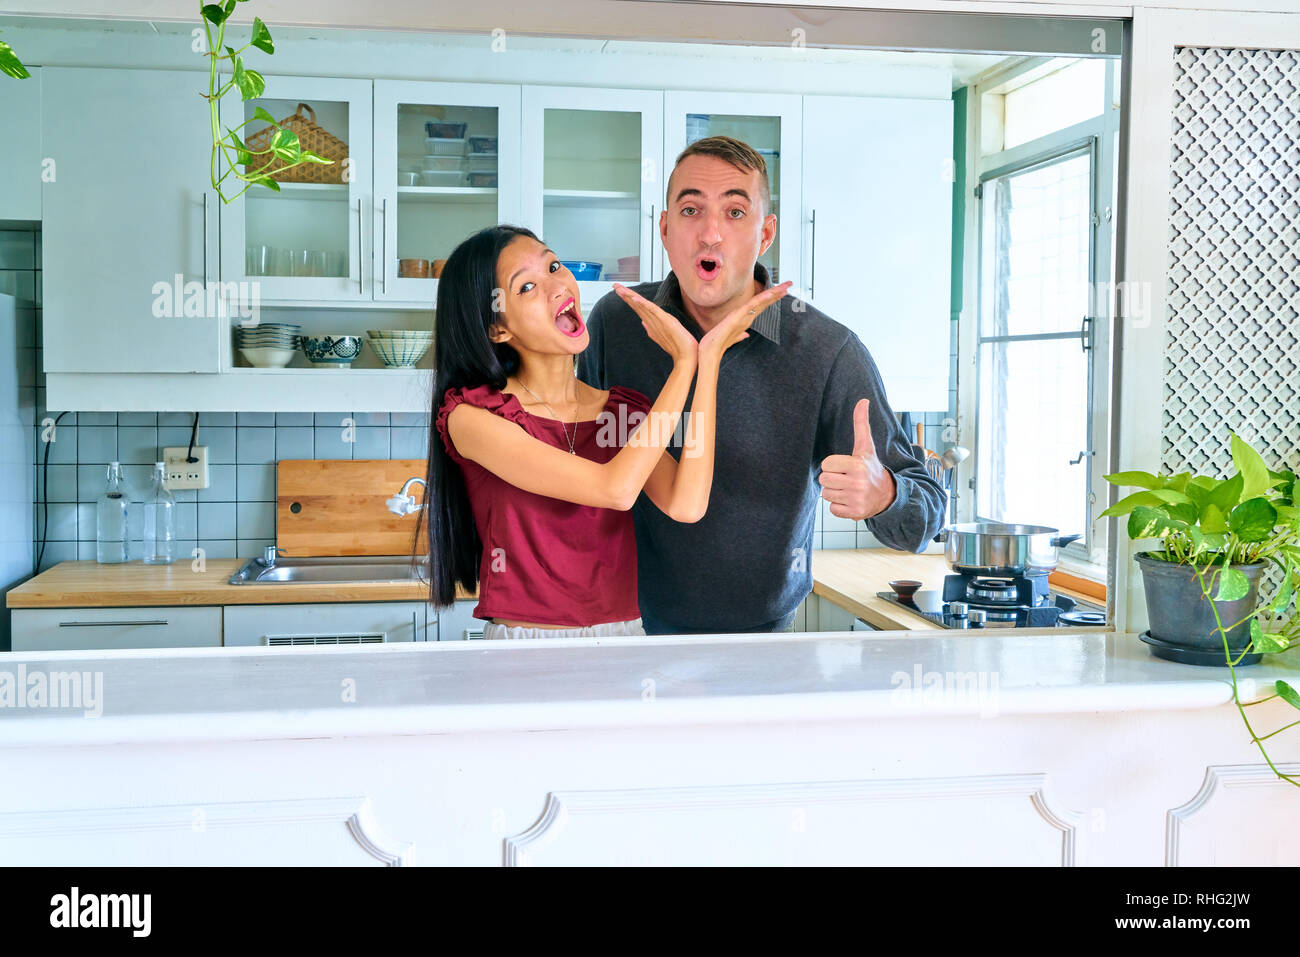 Lovely couple posing - thumbs up gesture and fun moments - Stock Image